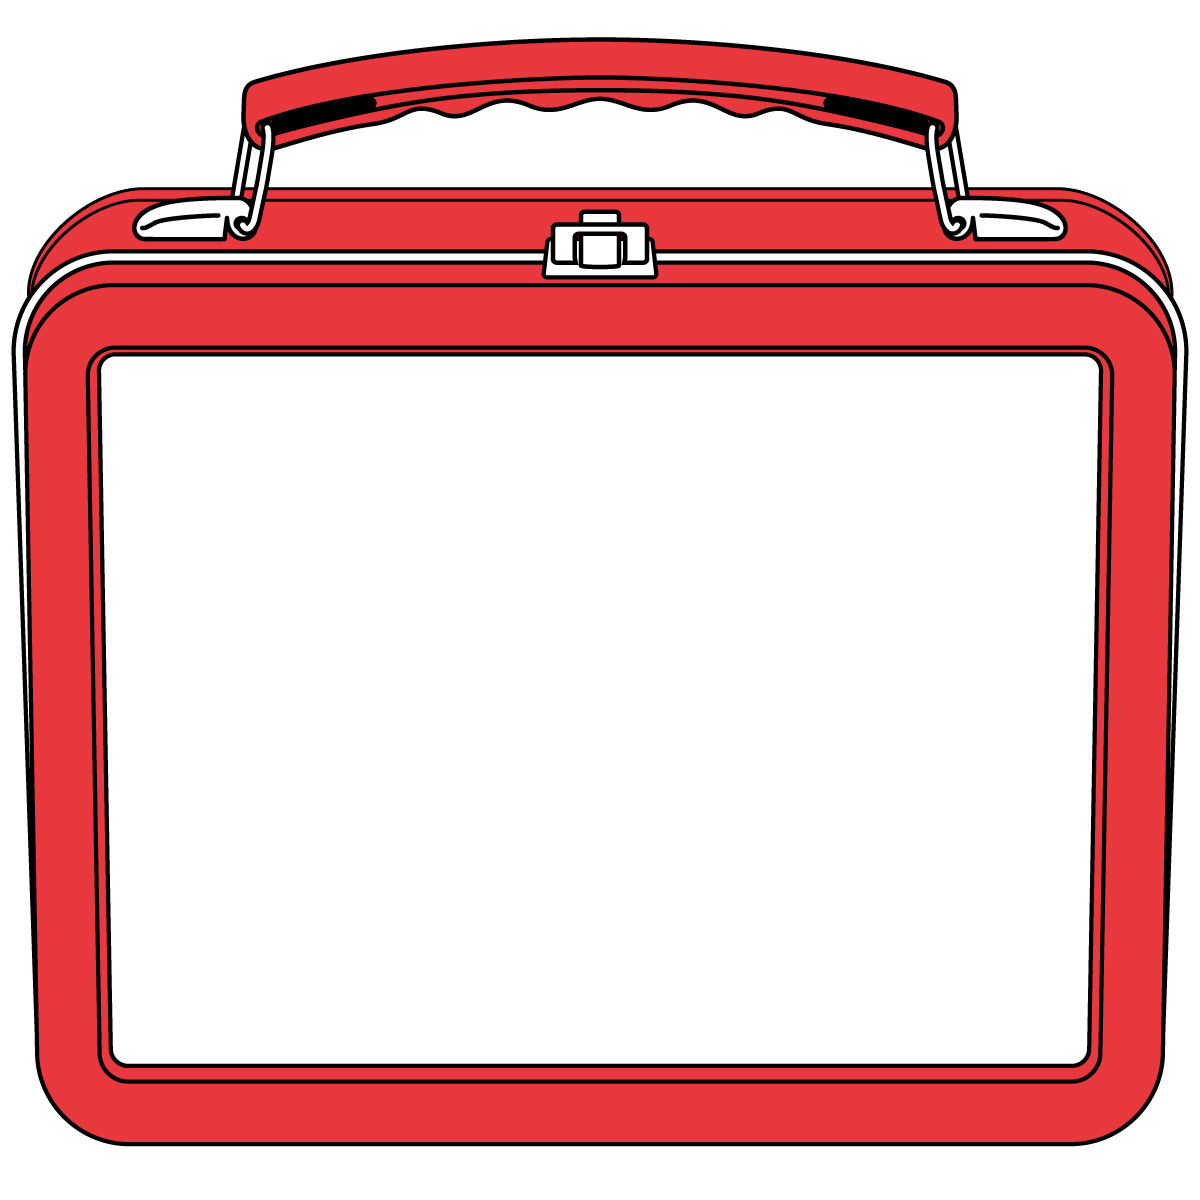 lunch bag clipart - photo #36